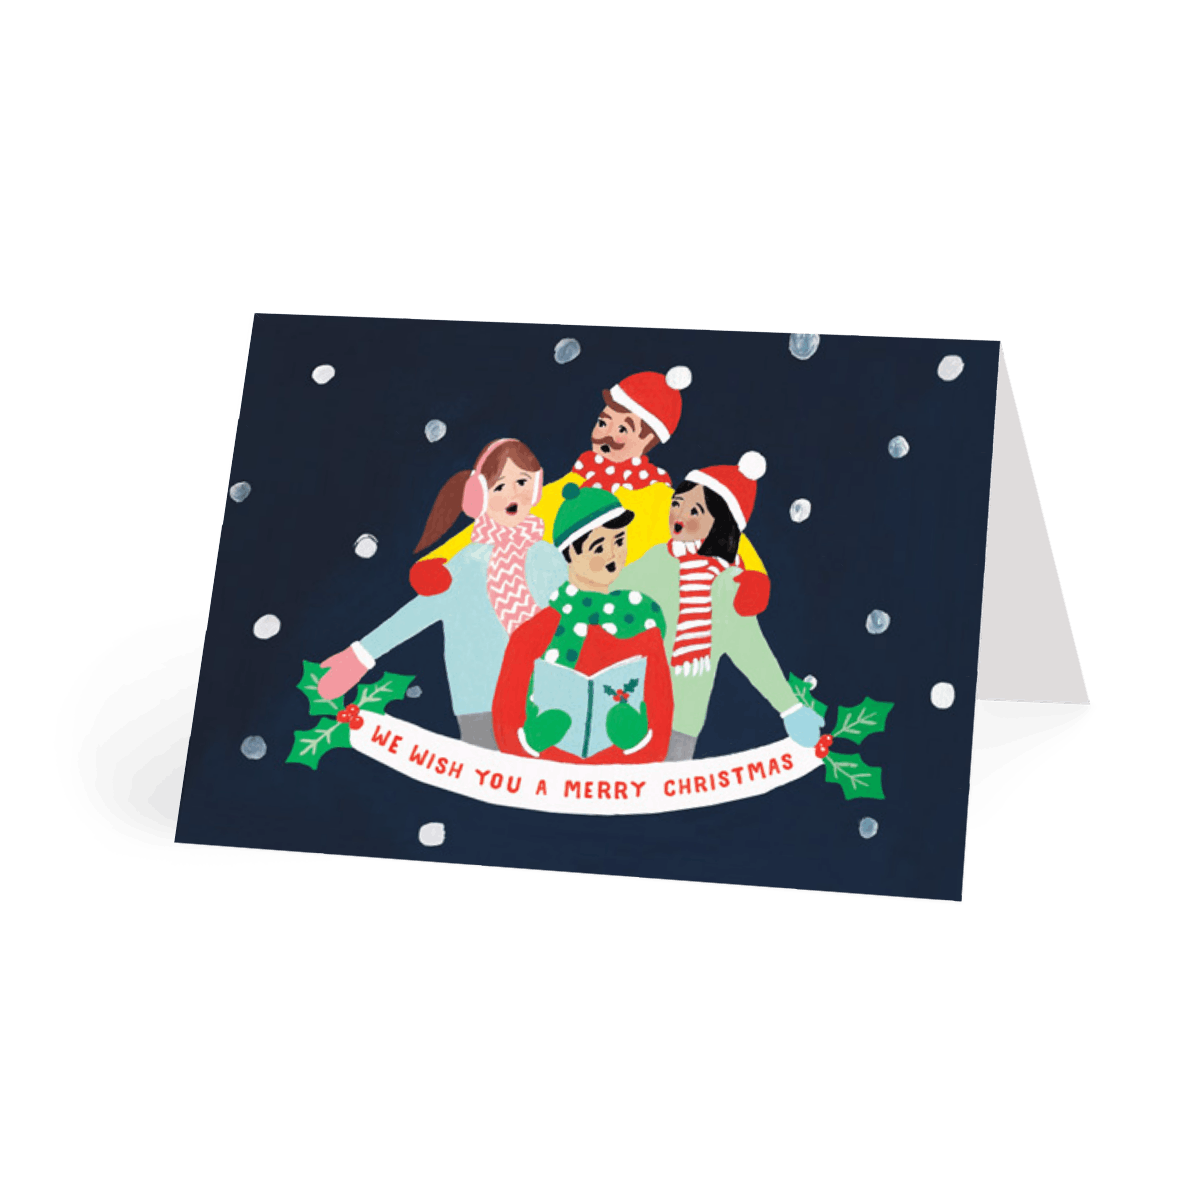 Https%3a%2f%2fwww.papier.com%2fproduct image%2f10028%2f14%2fchristmas carolers 2550 front 1470411286.png?ixlib=rb 1.1